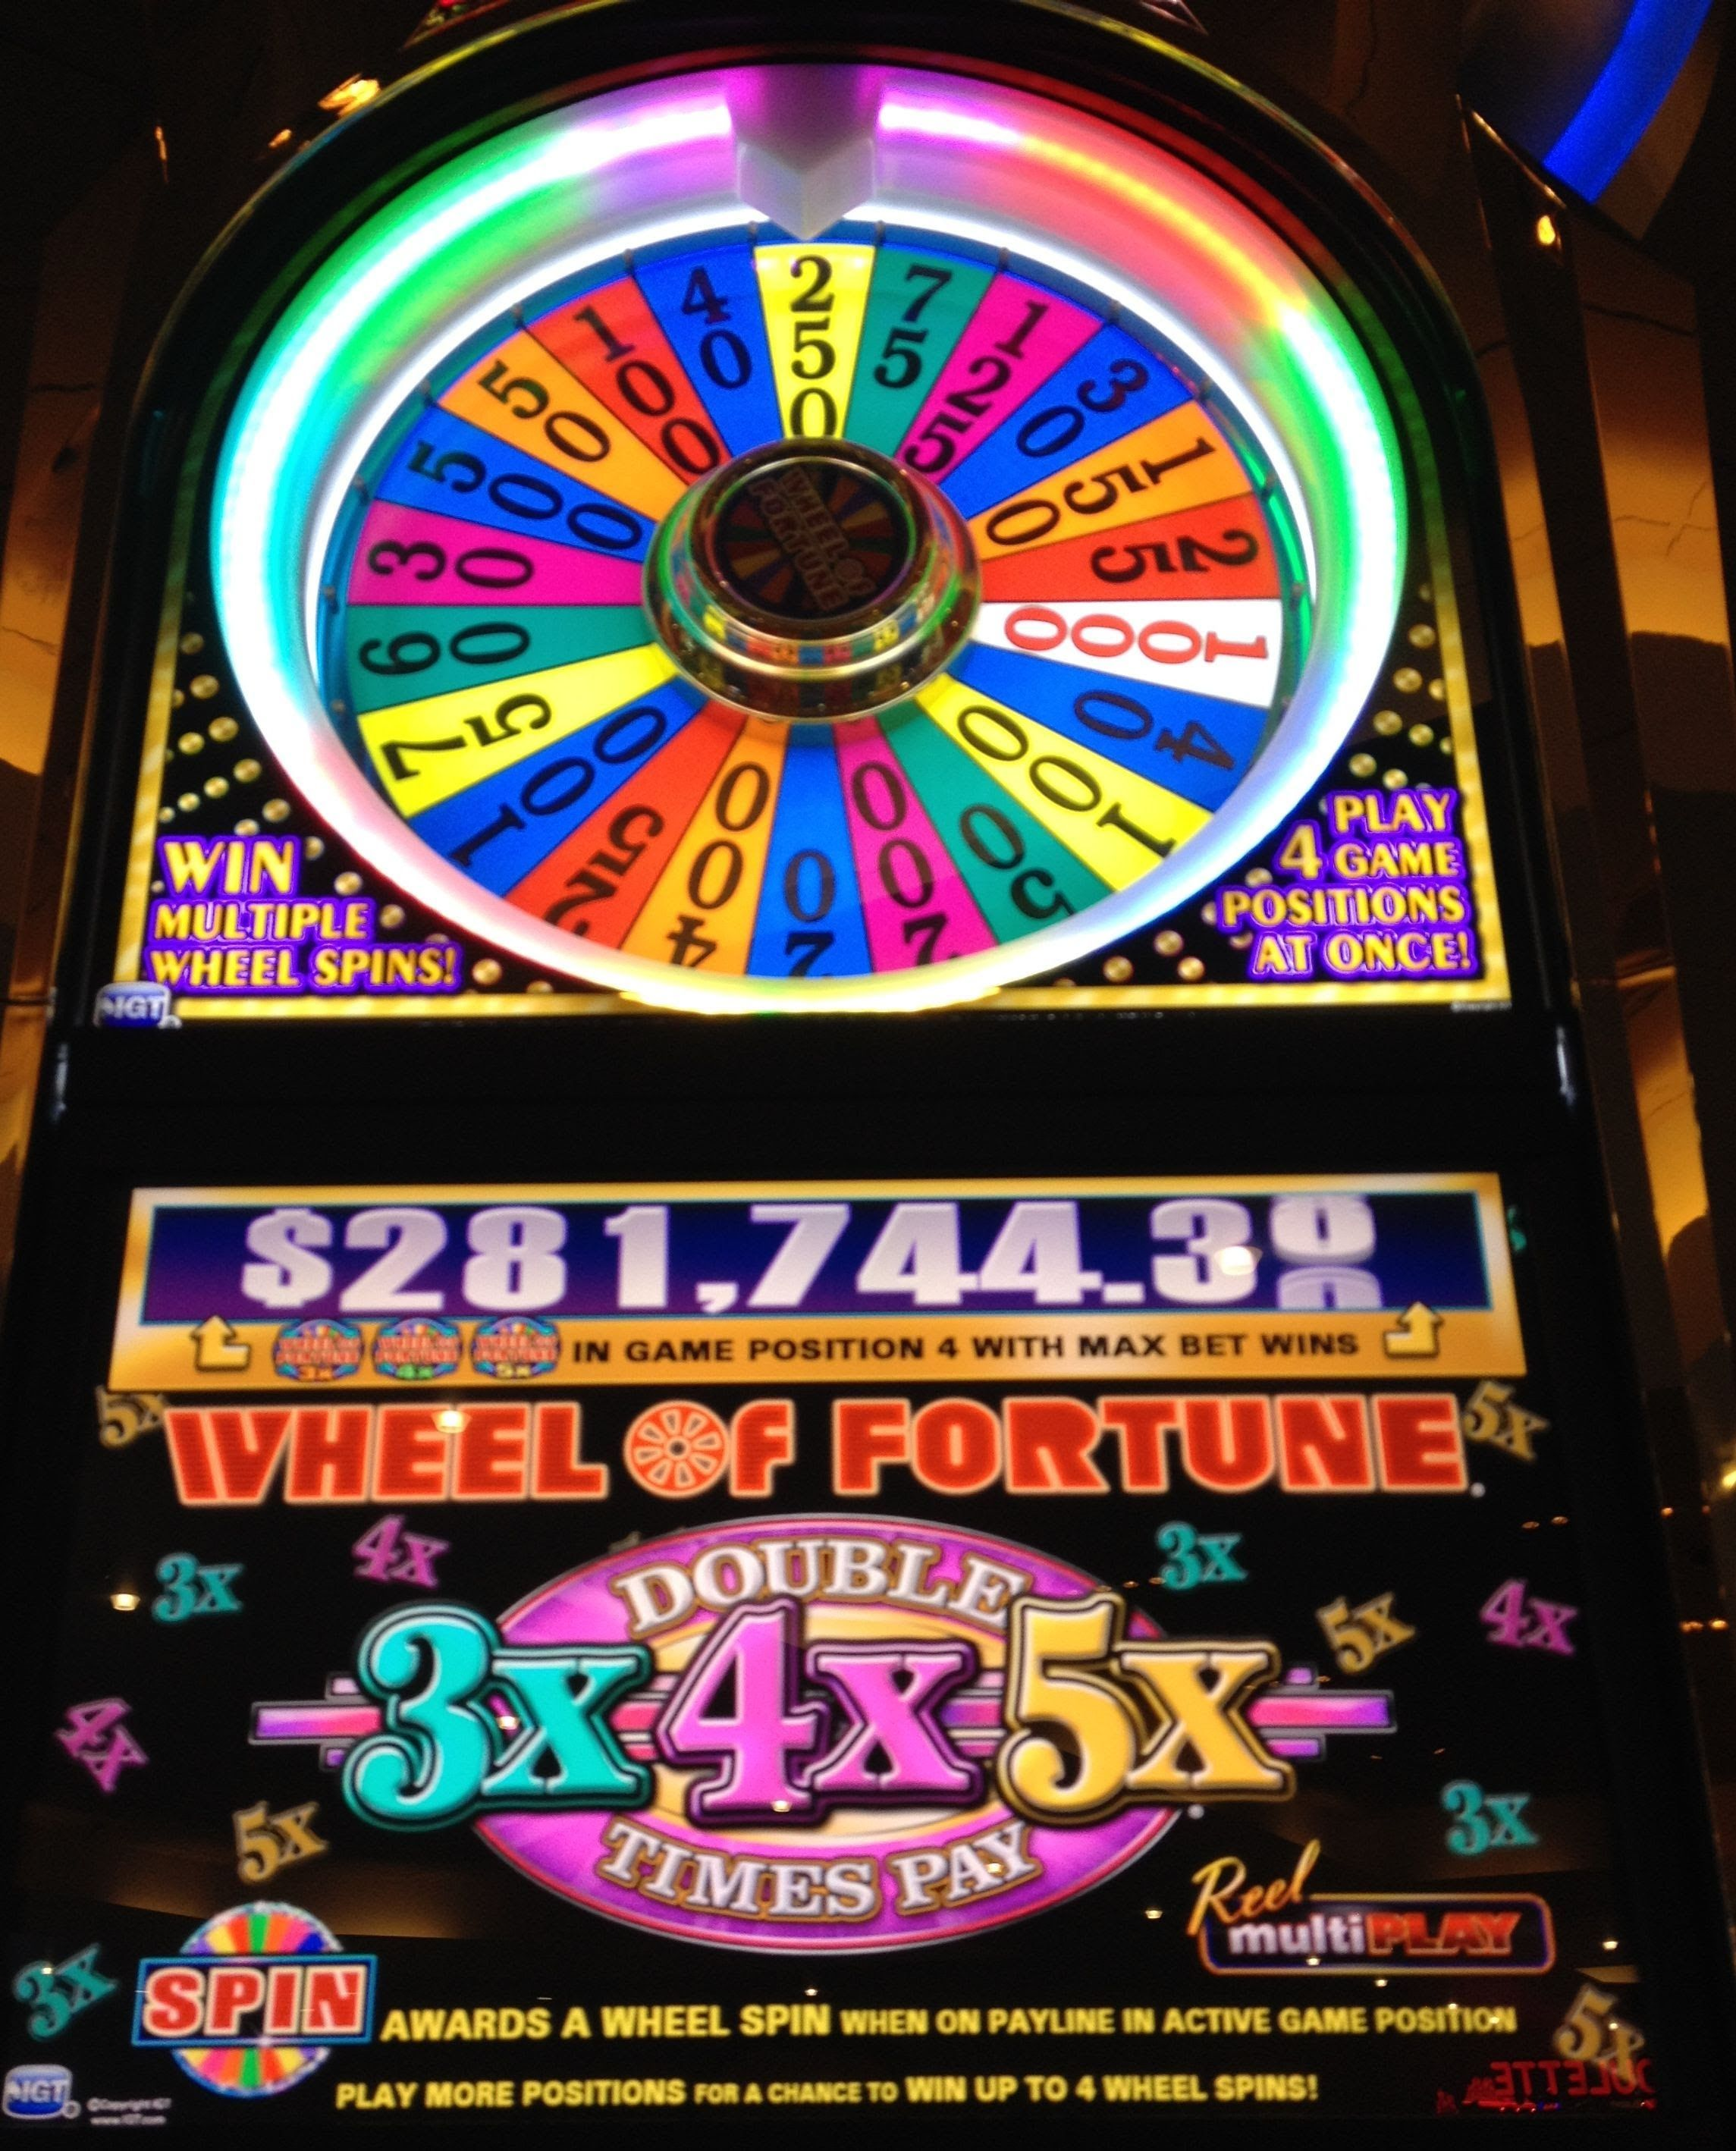 Wheel of fortune slot machines gamble equipment